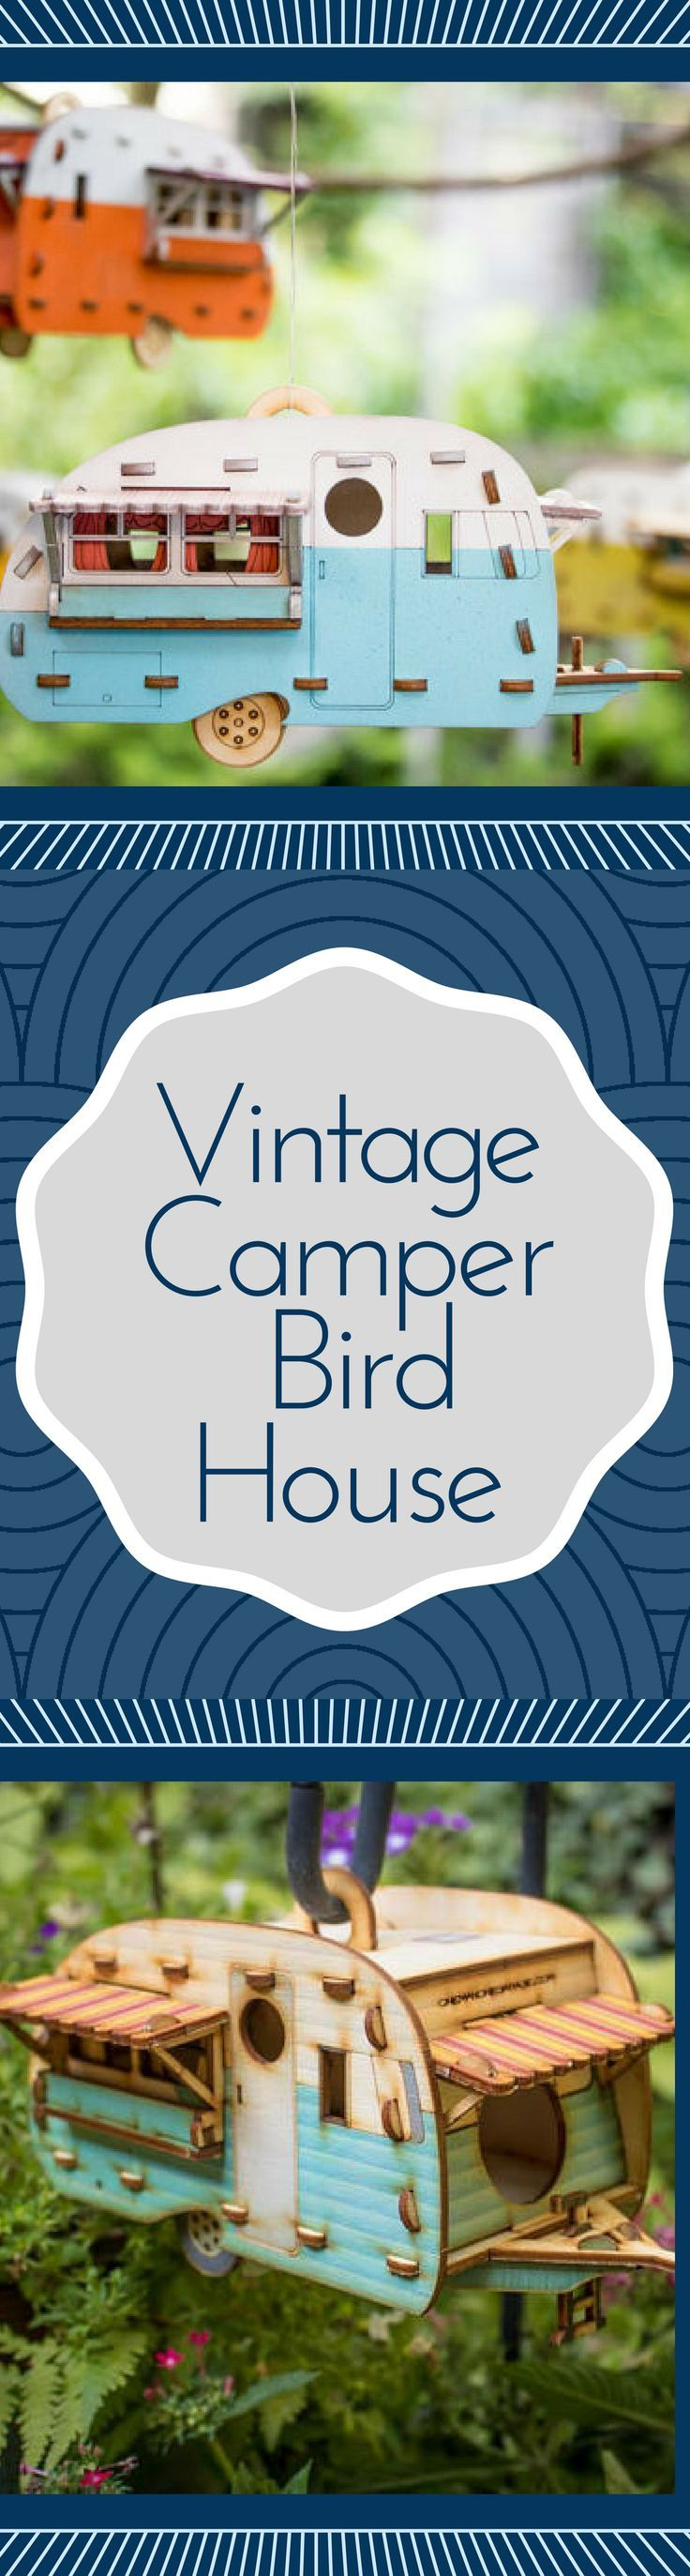 Vintage Camper Bird House. Scale model playset you can build and use! Bring back...